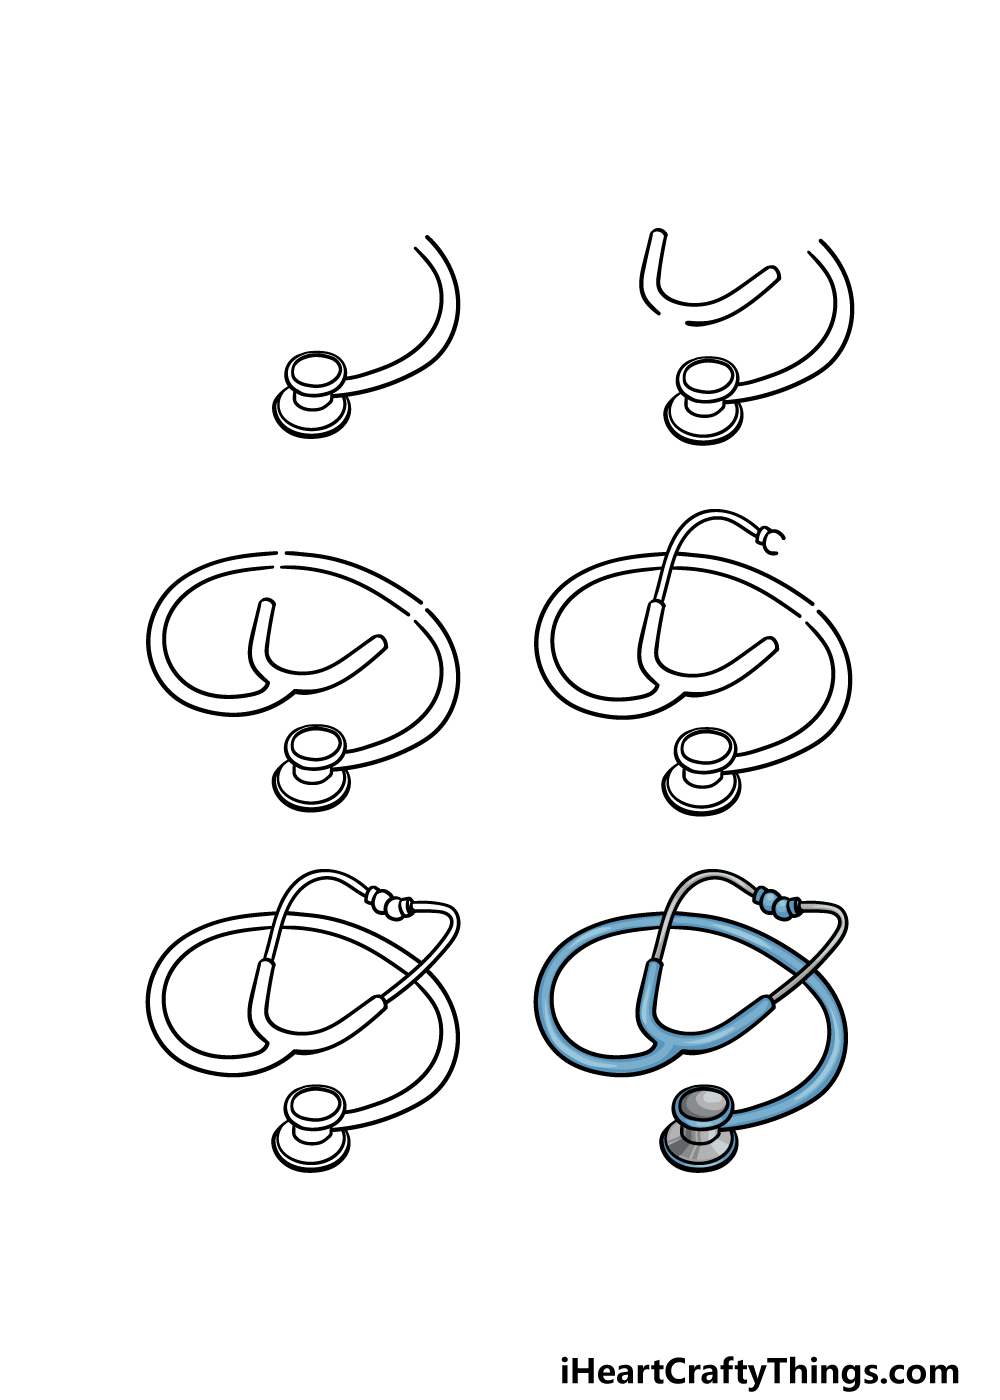 How to draw stethoscope in 6 steps